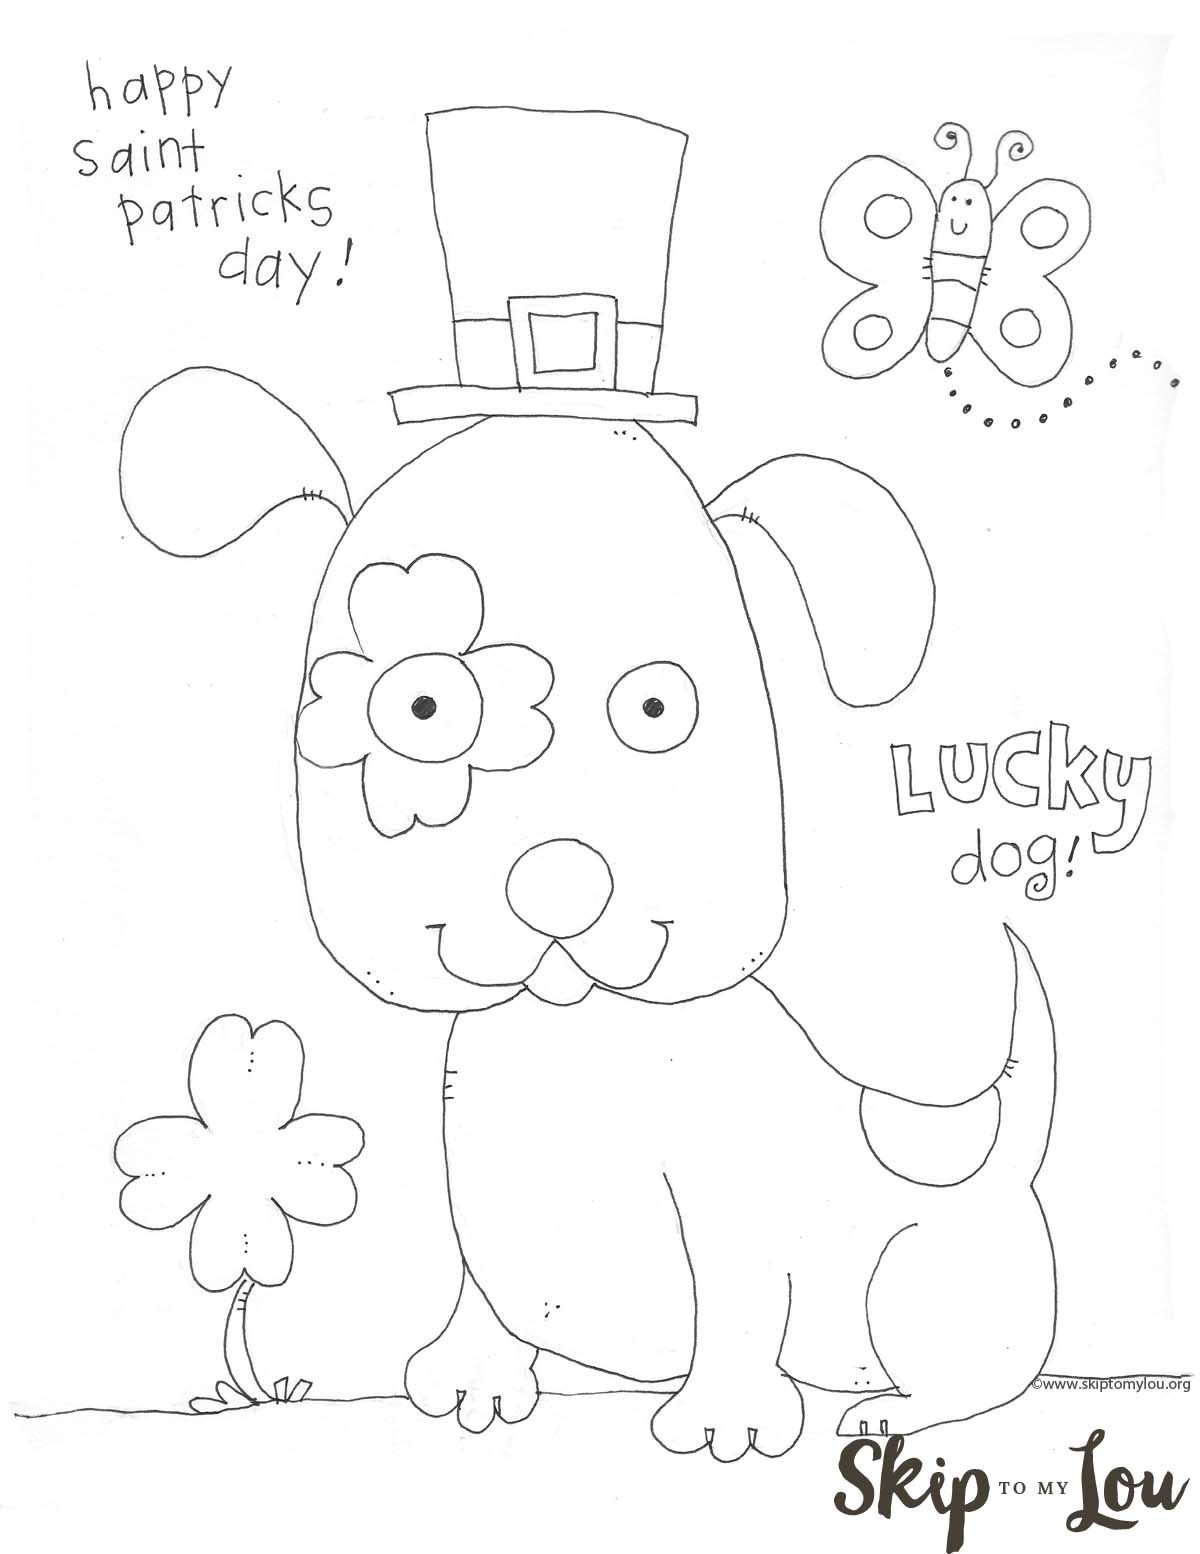 St Patricks Day Coloring Page For Preschoolers Coloring Pages Printable Coloring Pages St Patricks Day Crafts For Kids